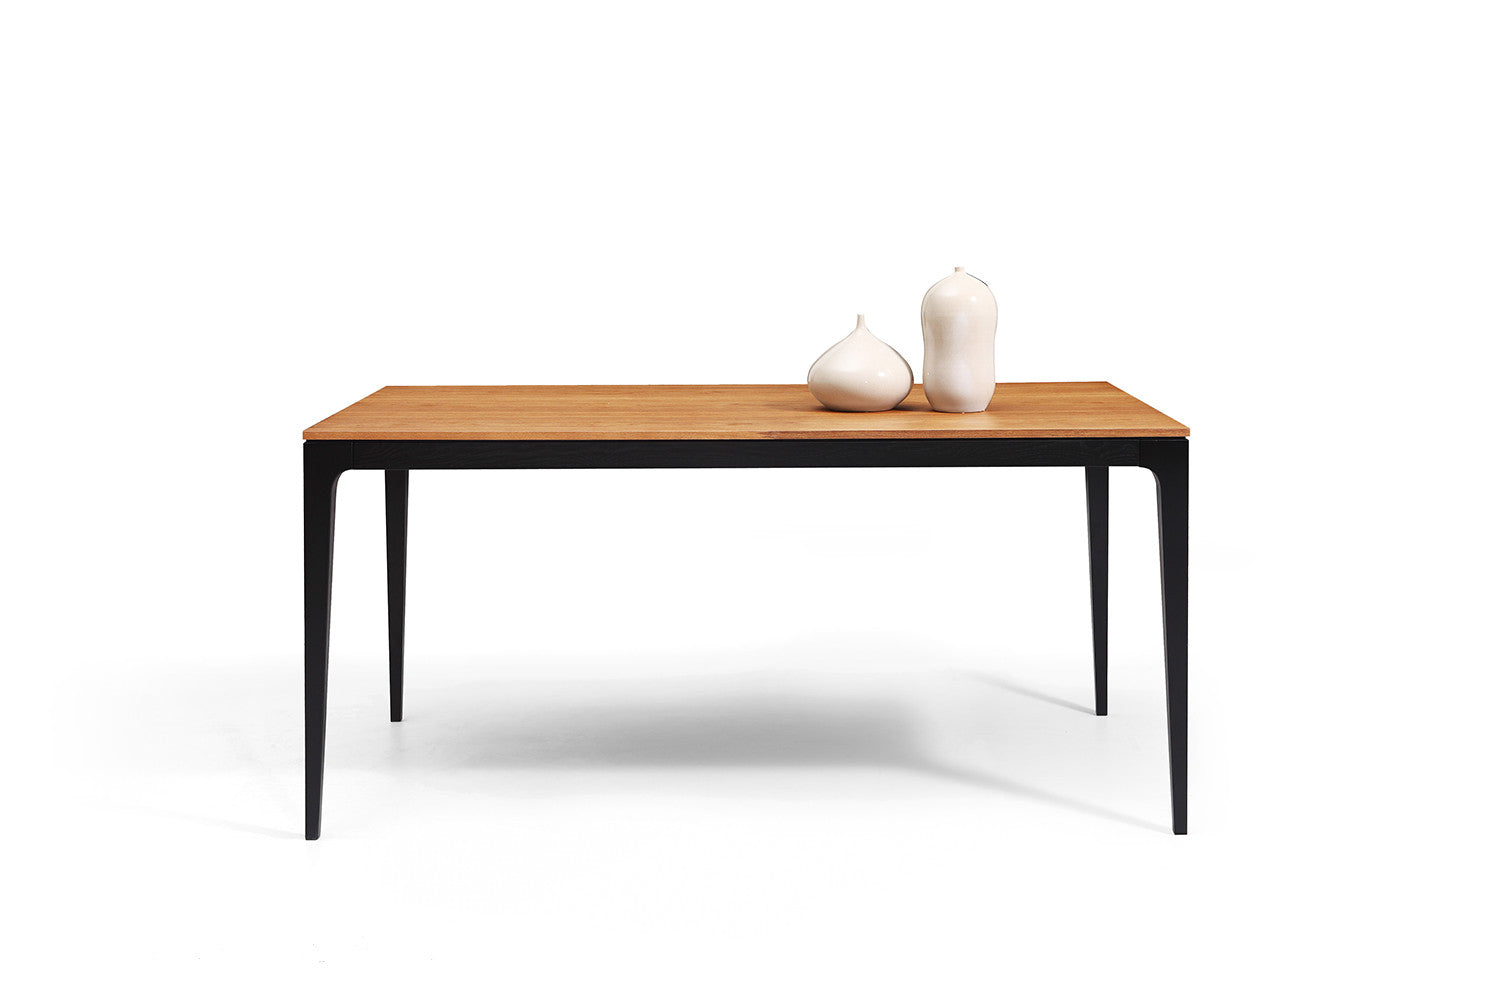 table de repas vintage scandinave noire et bois toss. Black Bedroom Furniture Sets. Home Design Ideas